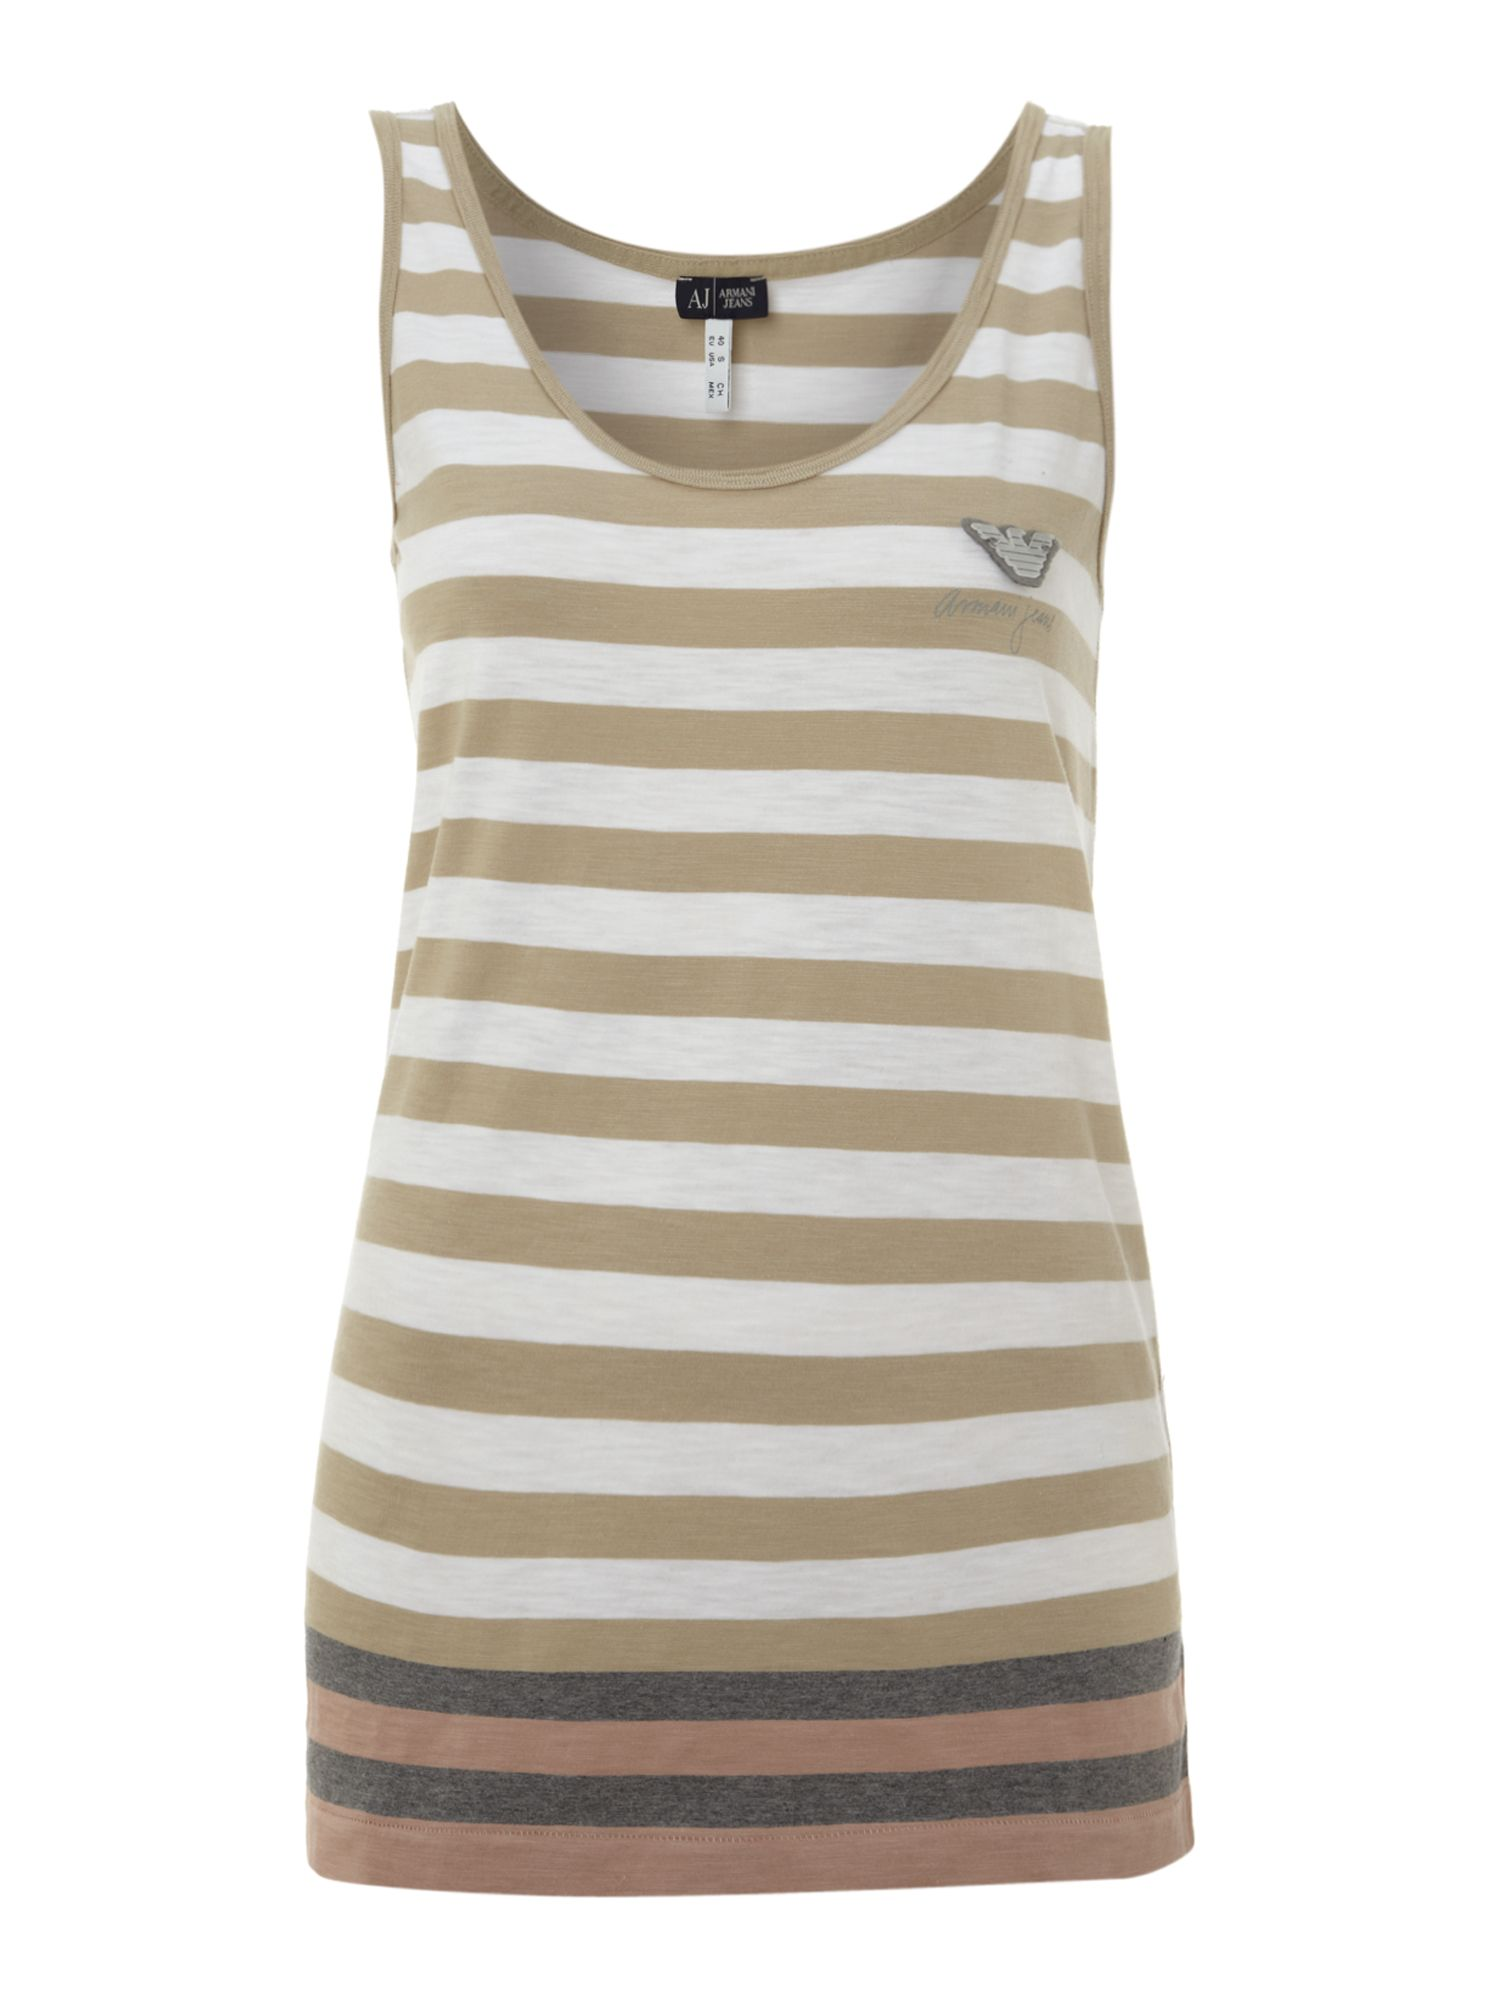 Sleeveless striped tank top with logo